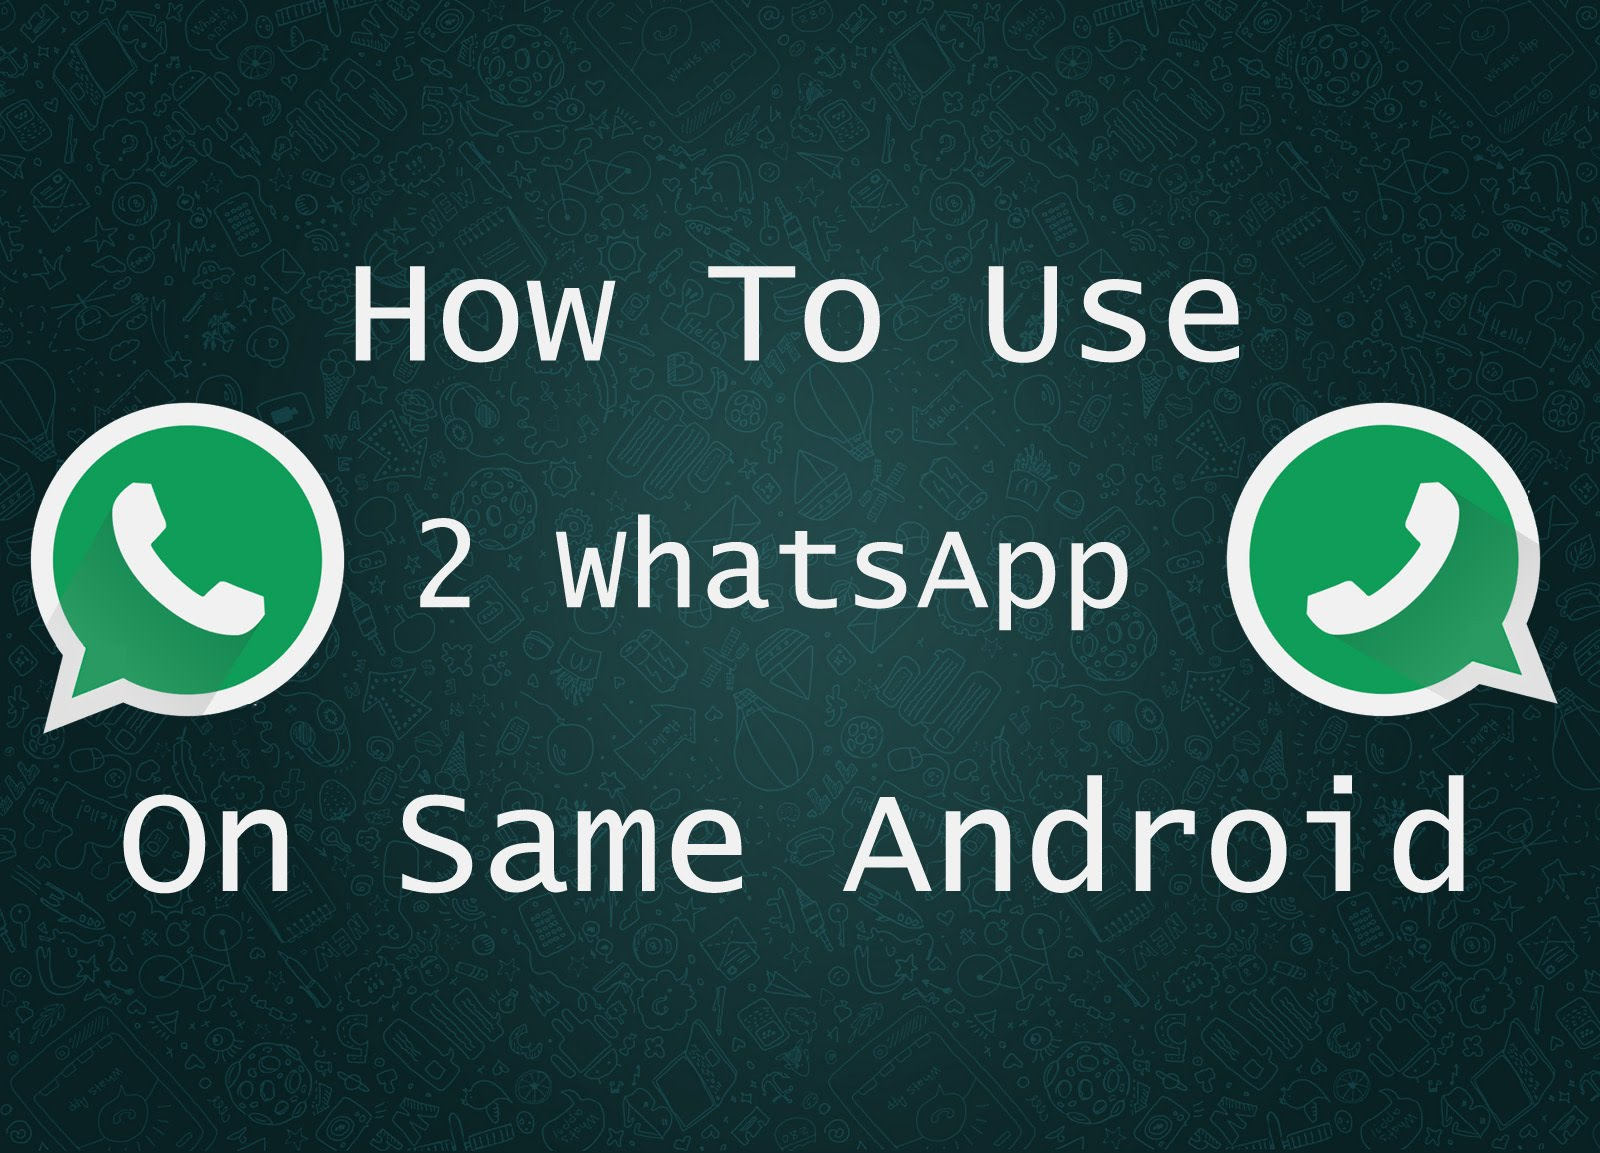 Come avere 2 account Whatsapp su Android